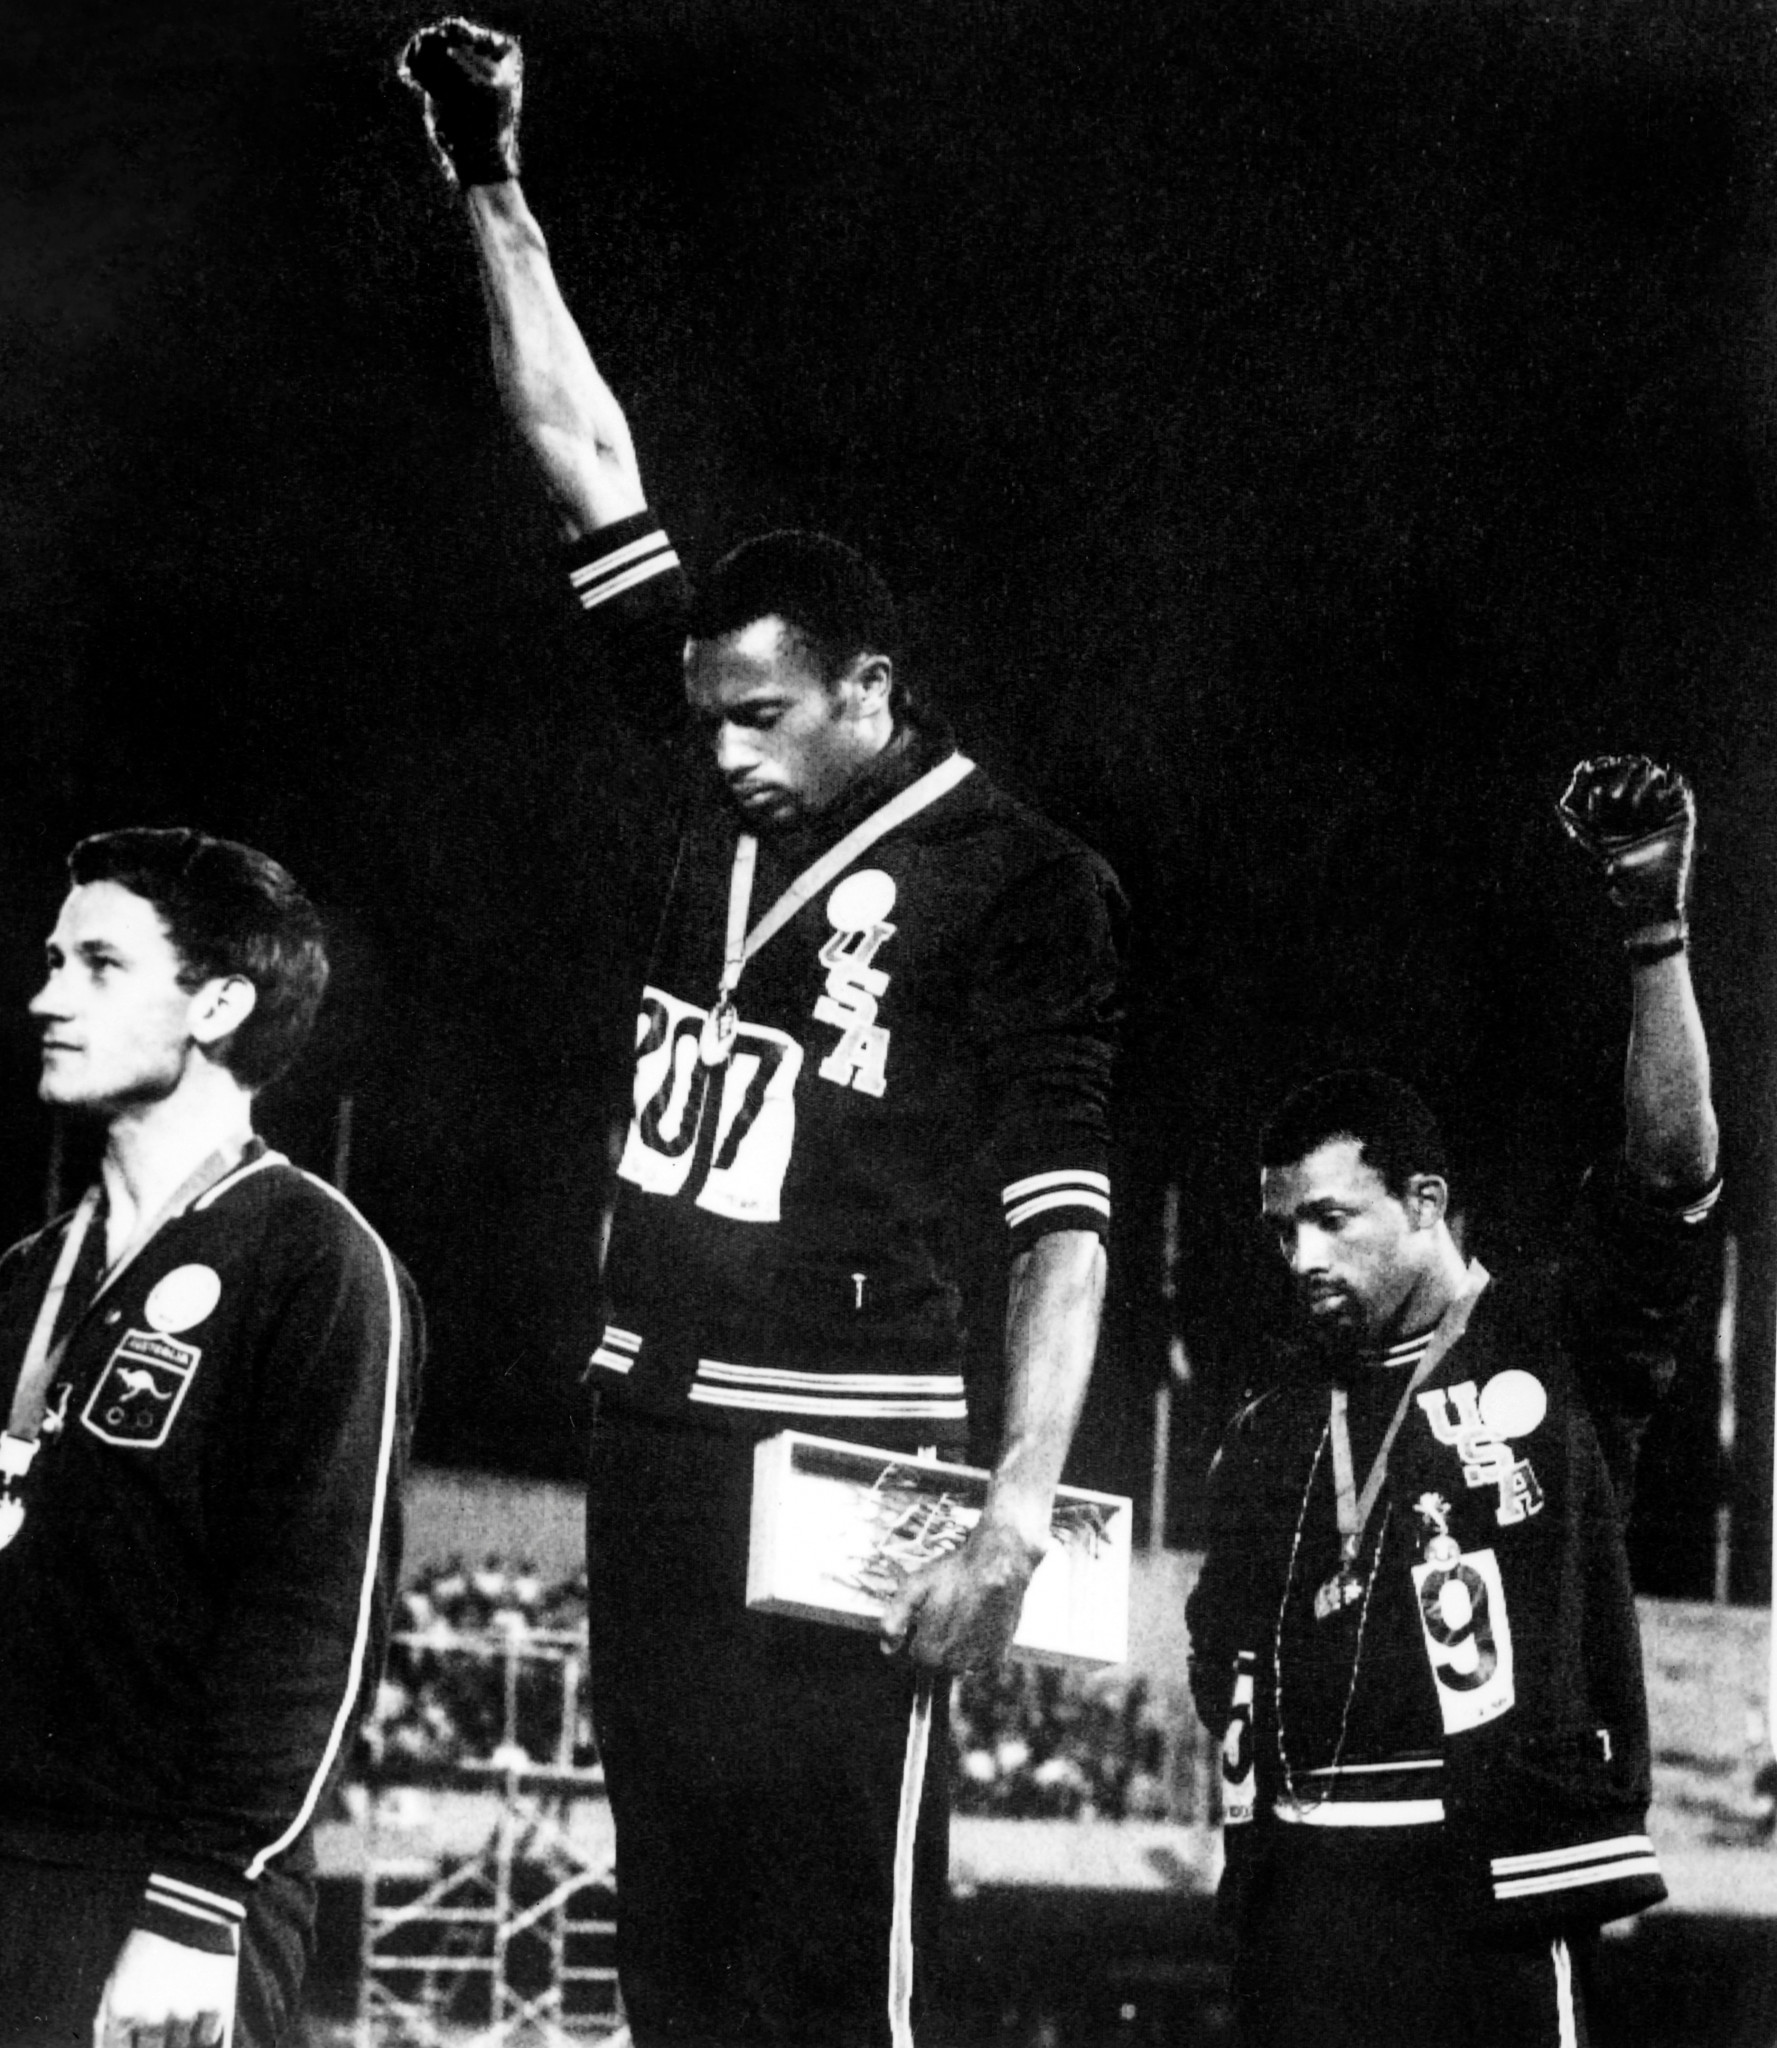 Tommie Smith and John Carlos' black power podium protest came at the 1968 Olympic Games in Mexico City ©Getty Images